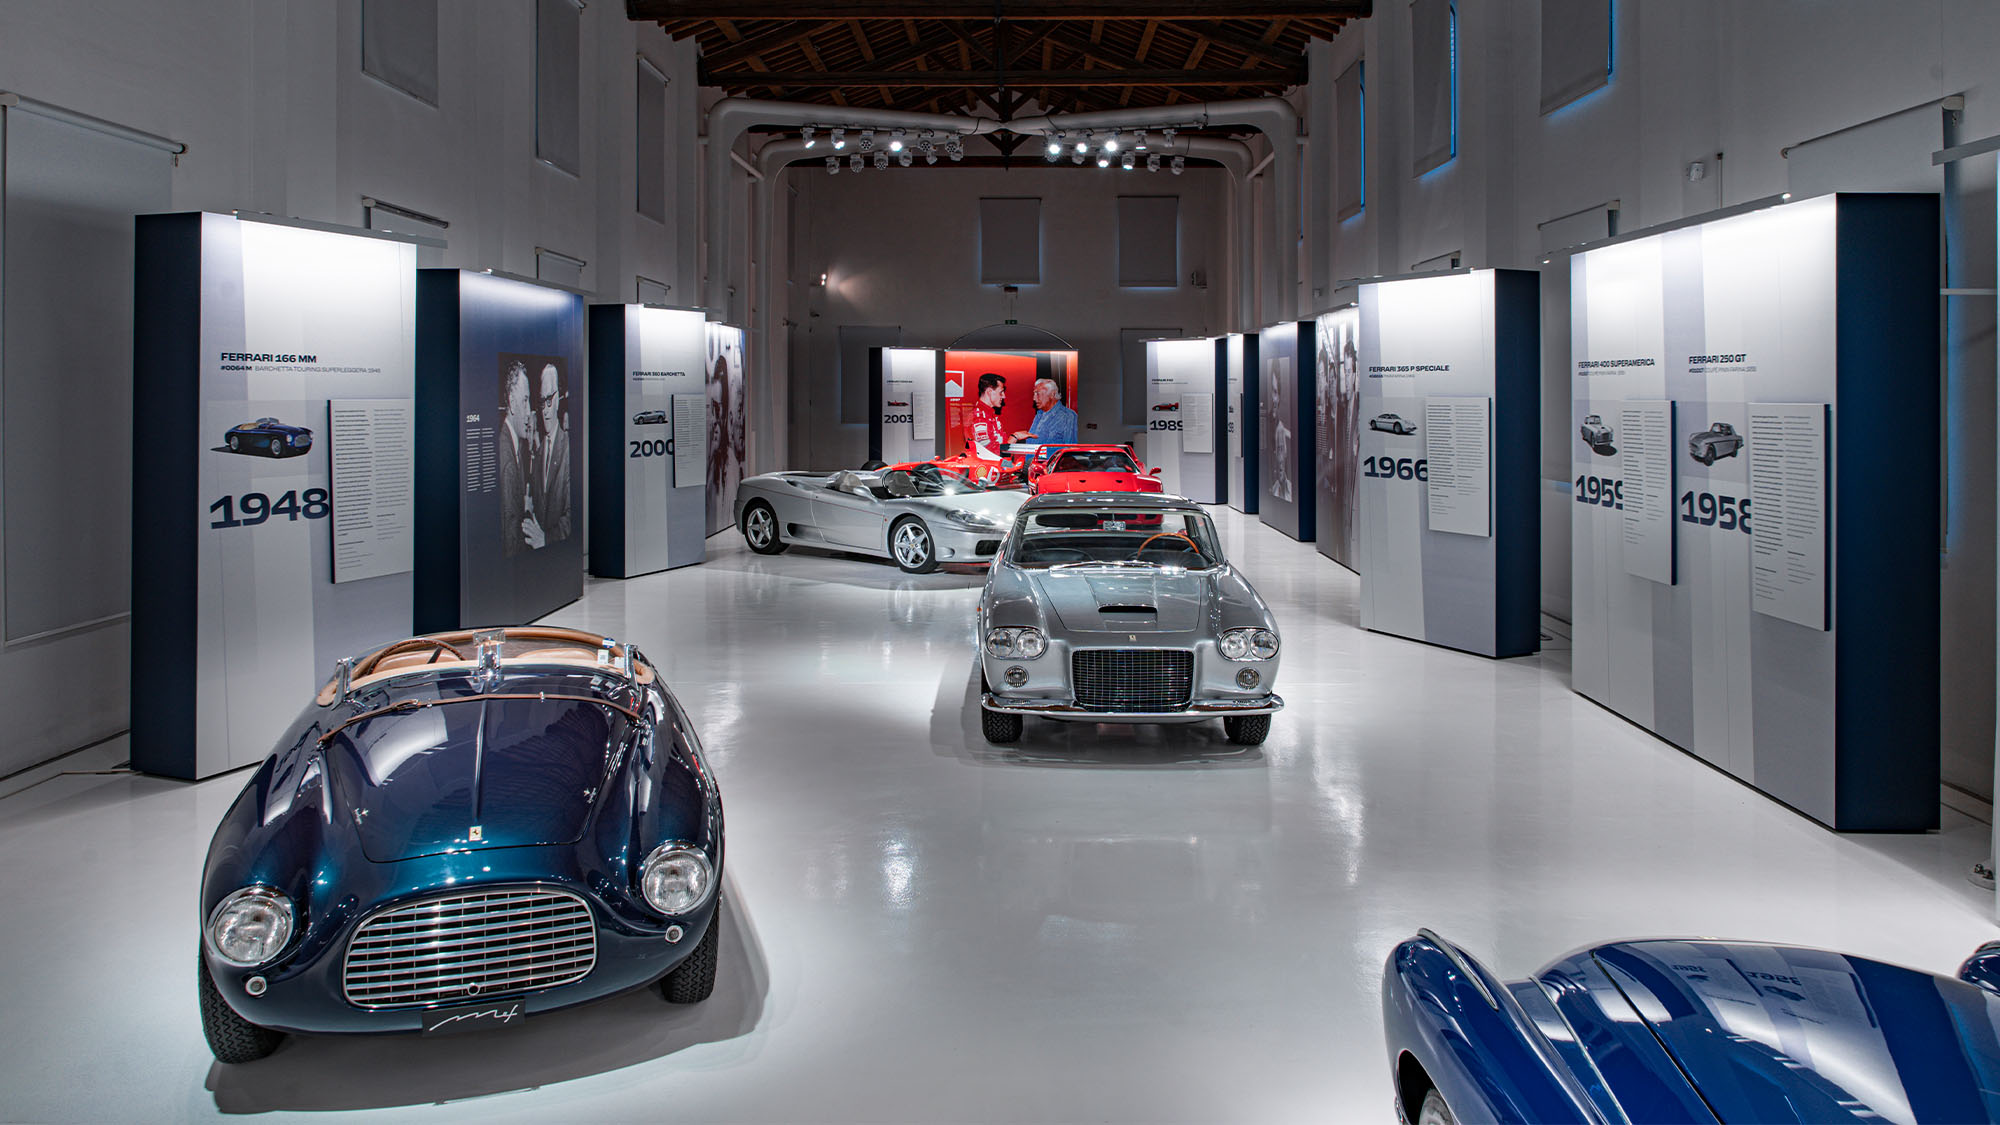 One-off Ferraris from Gianni Agnelli collection go on display